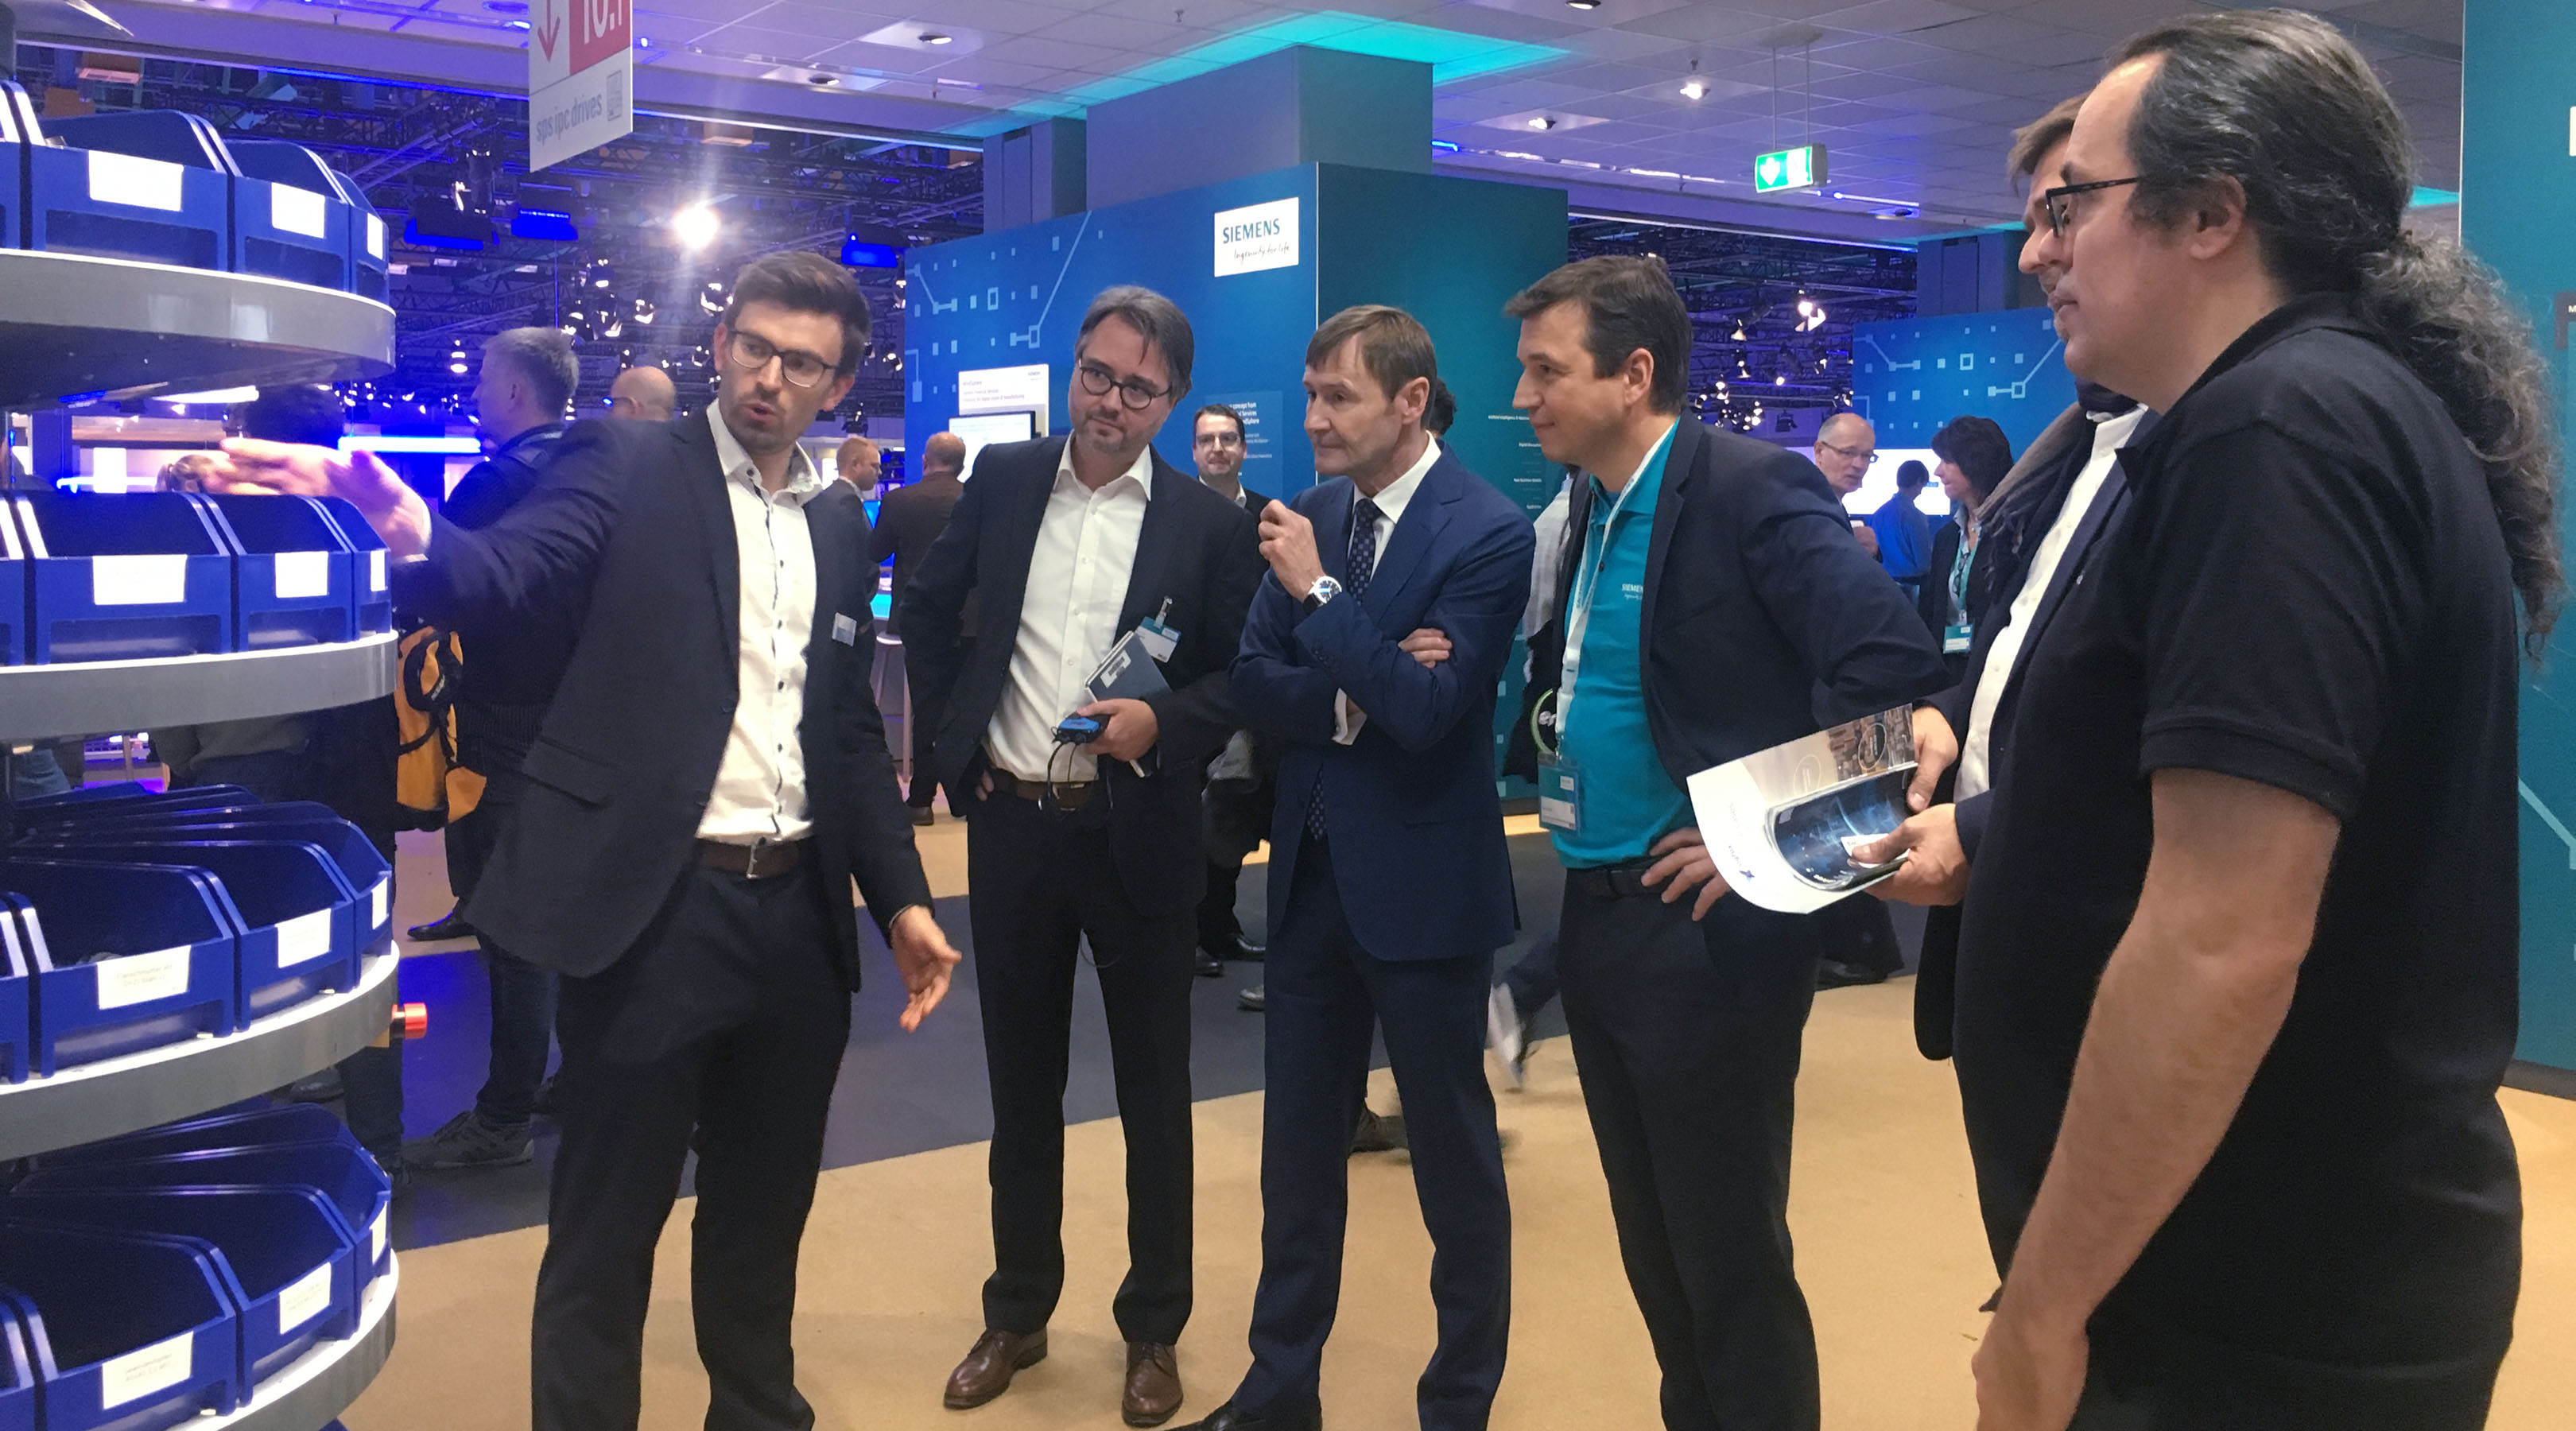 photo of Klaus Helmrich, member of the Siemens board, visiting the booth